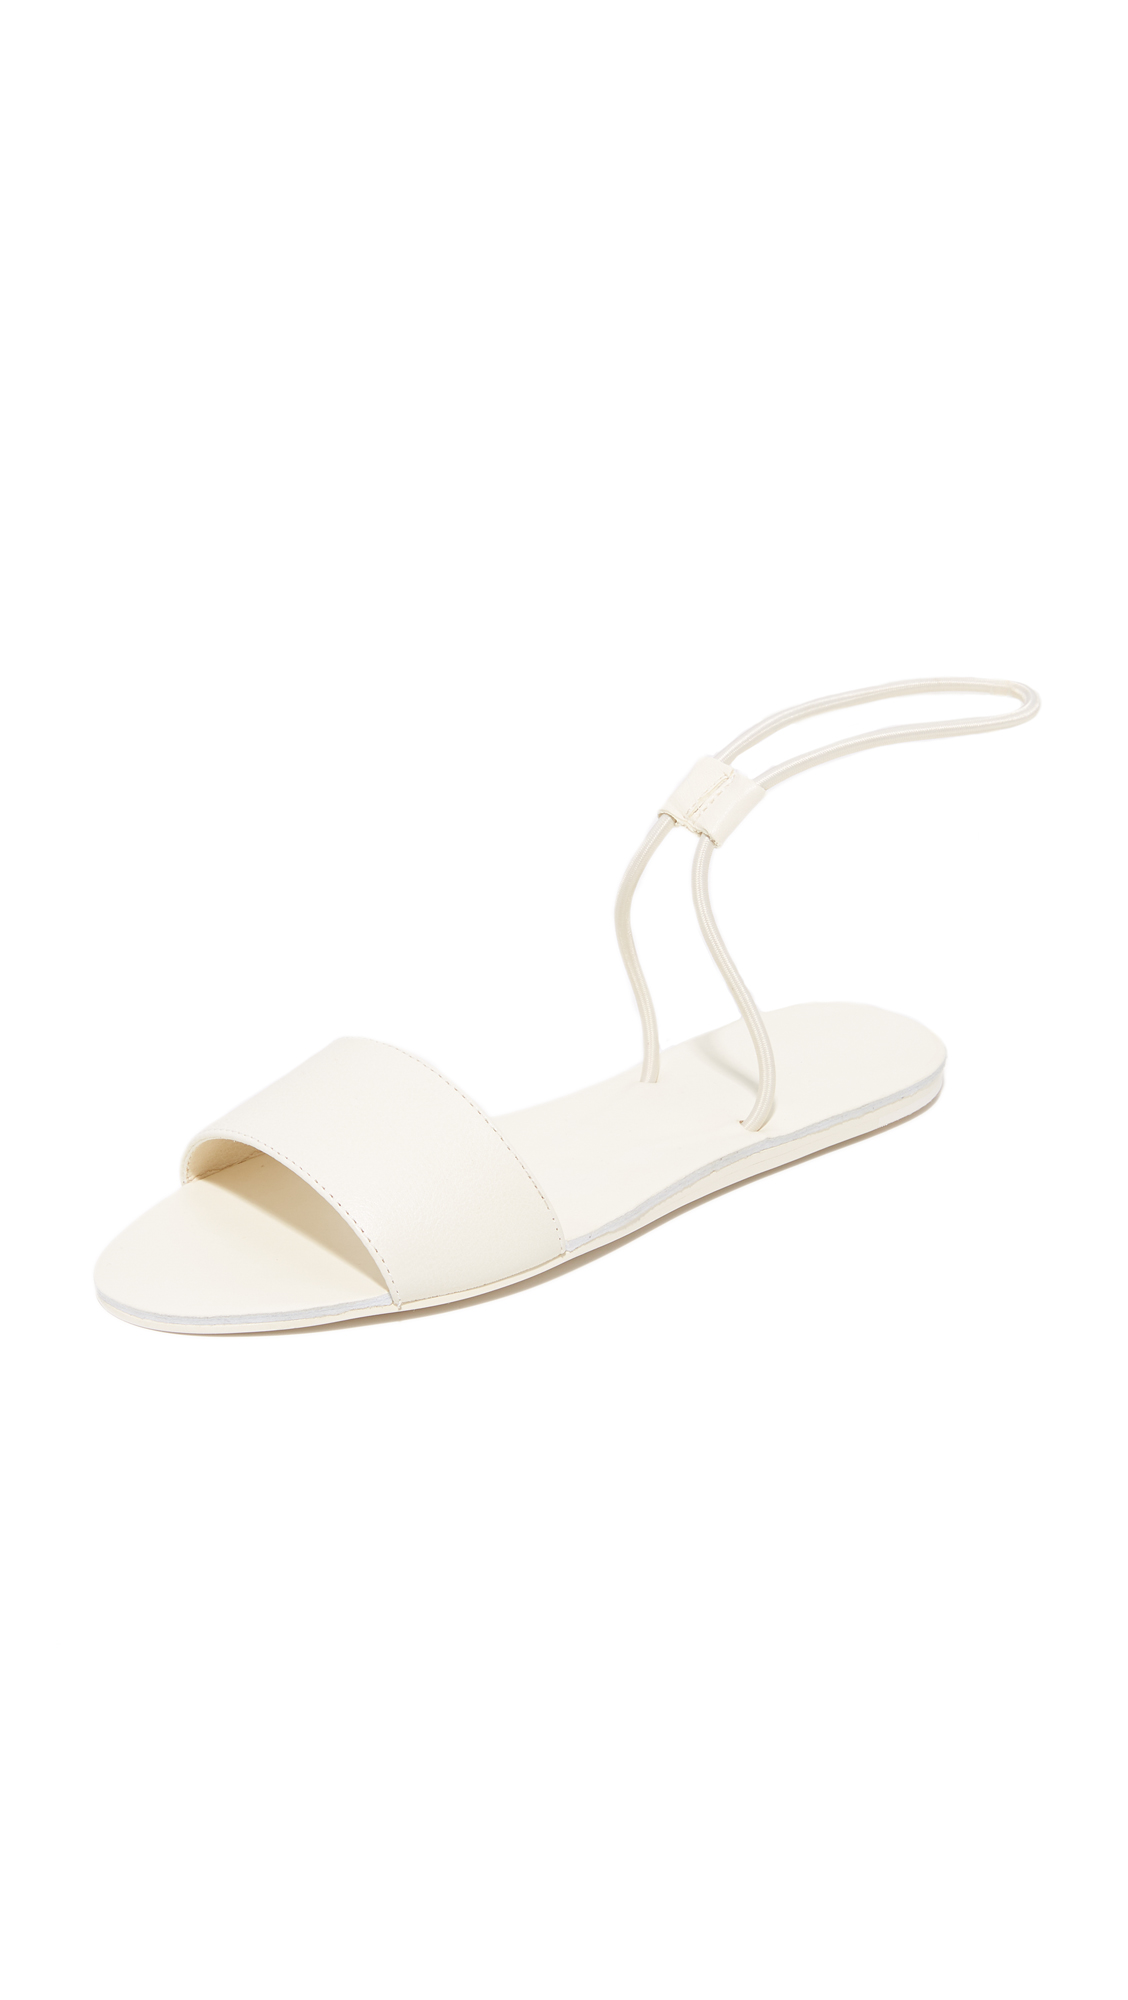 Dolce Vita Dara Elastic Sandals - Off White